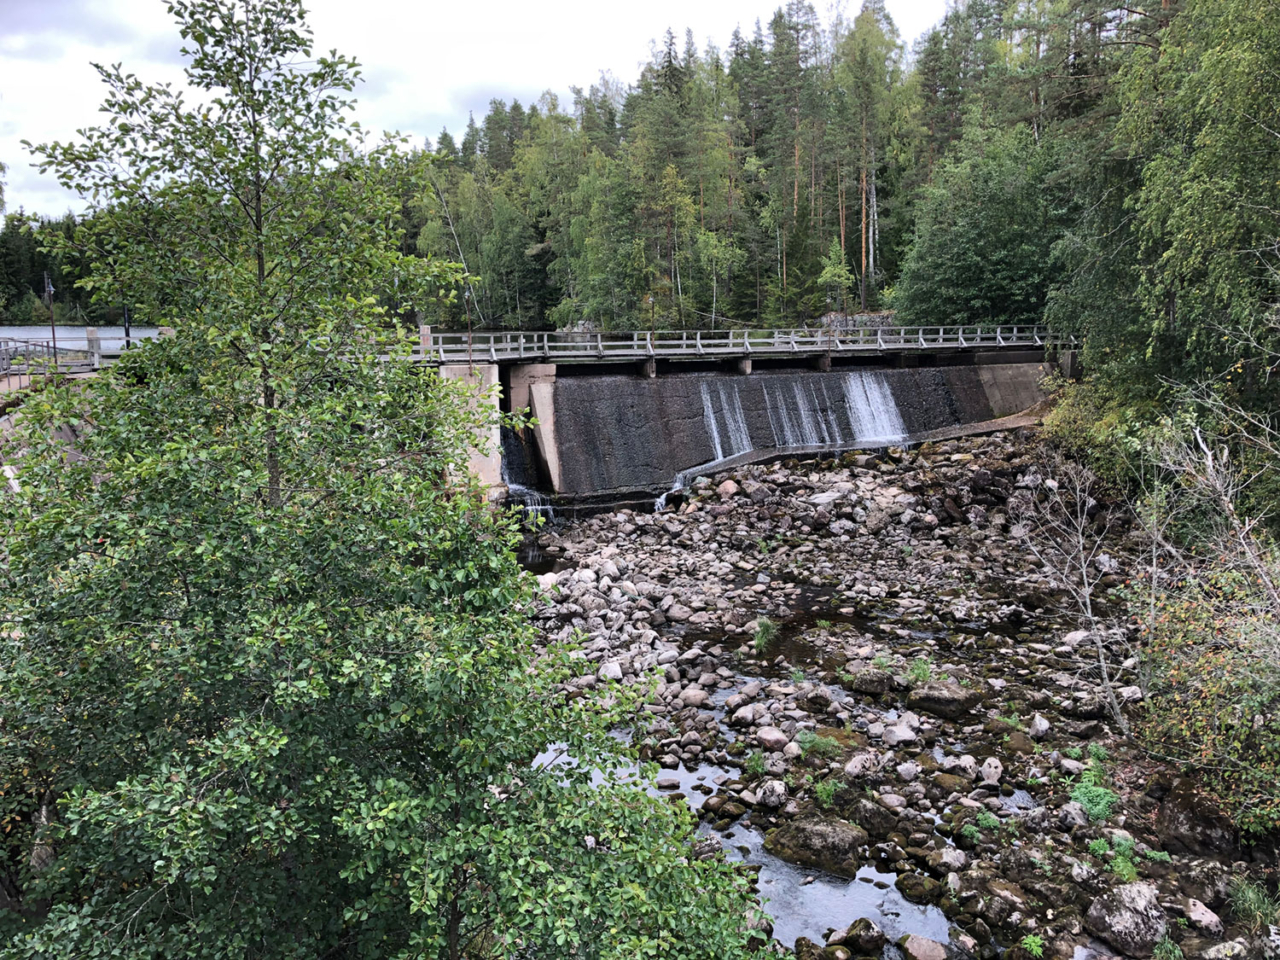 Situated only a half mile from Russian border in Finland, the Kangaskoski dam is the first barrier migrating salmon face in the Hiitolanjoki River — it's also the first of the three Hiitolanjoki River dams scheduled to meet the bulldozer, starting in 2021. Photo: South Karelian Foundation for Recreation Areas